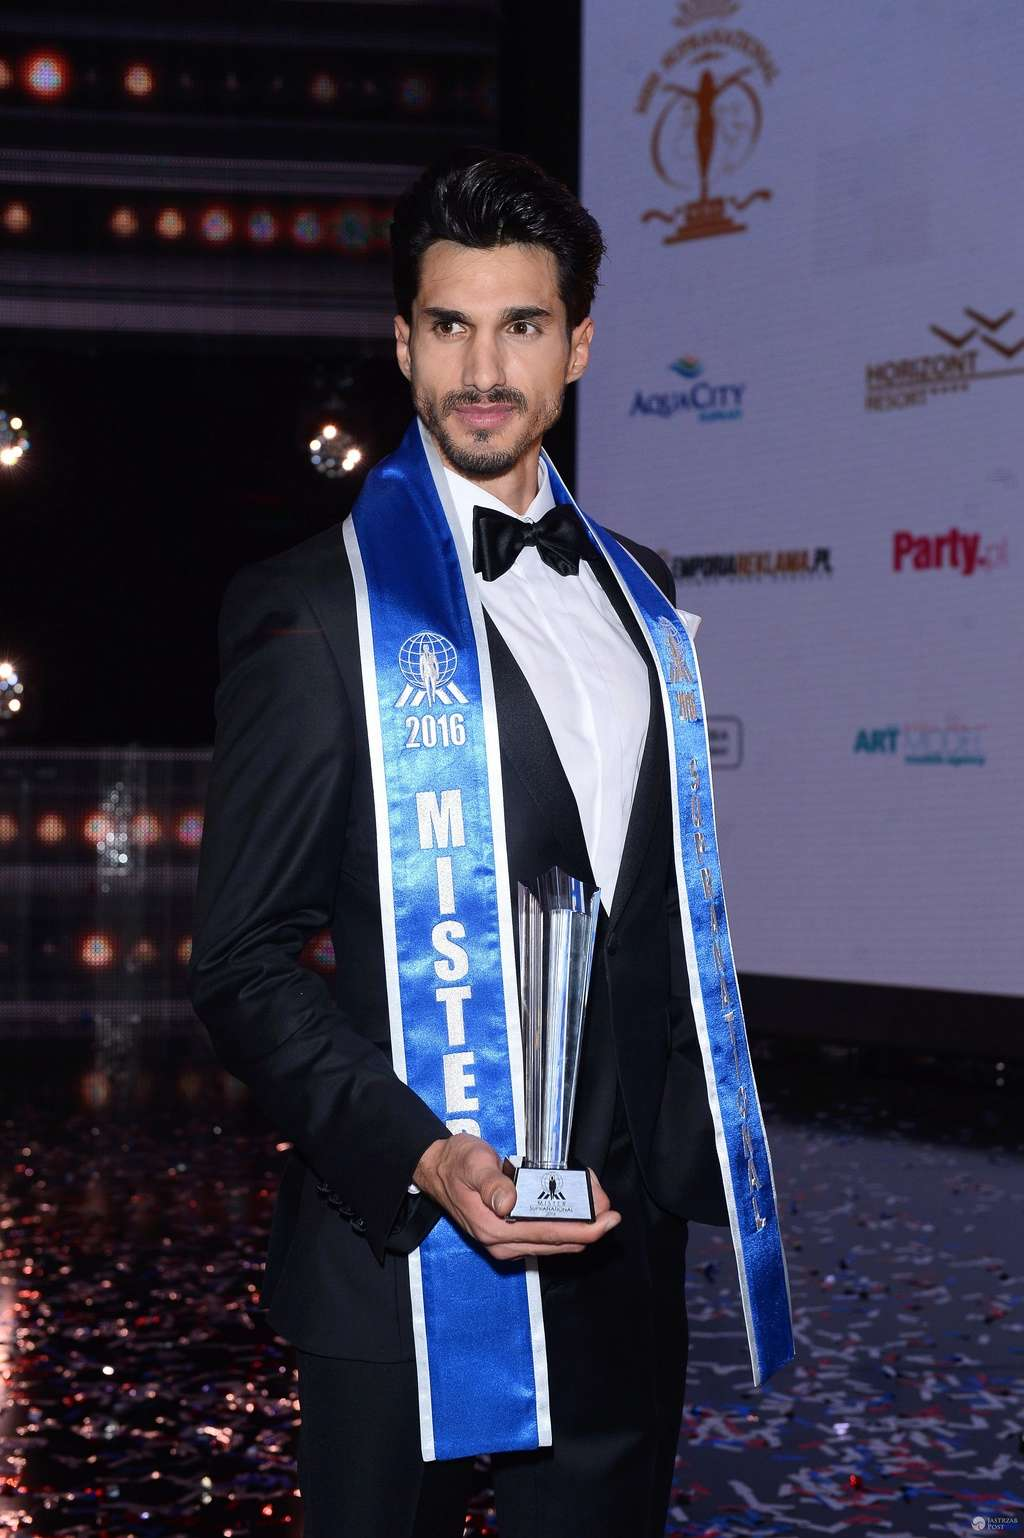 The official thread of Mister Supranational 2016 - Diego Garcy of Mexico All-on13